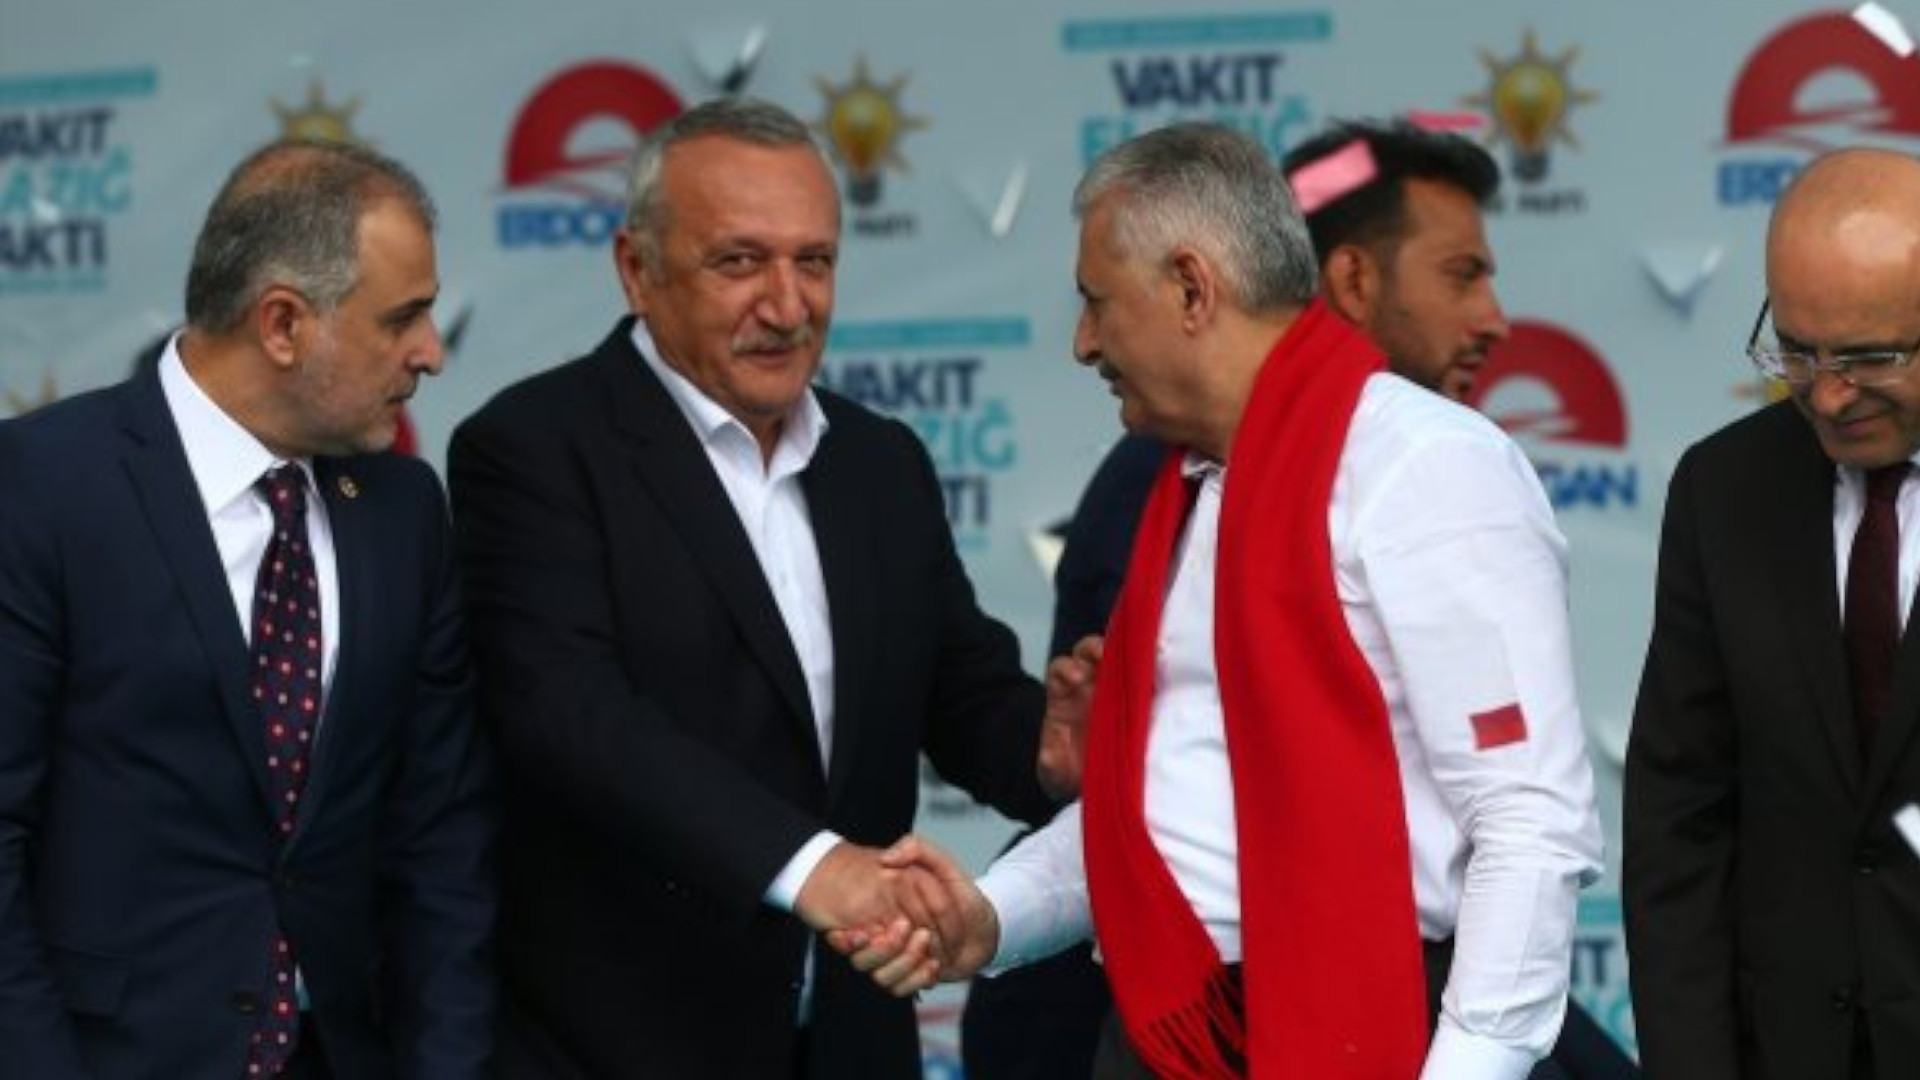 Yachts, dead bodies, the regime and Mr. Ağar